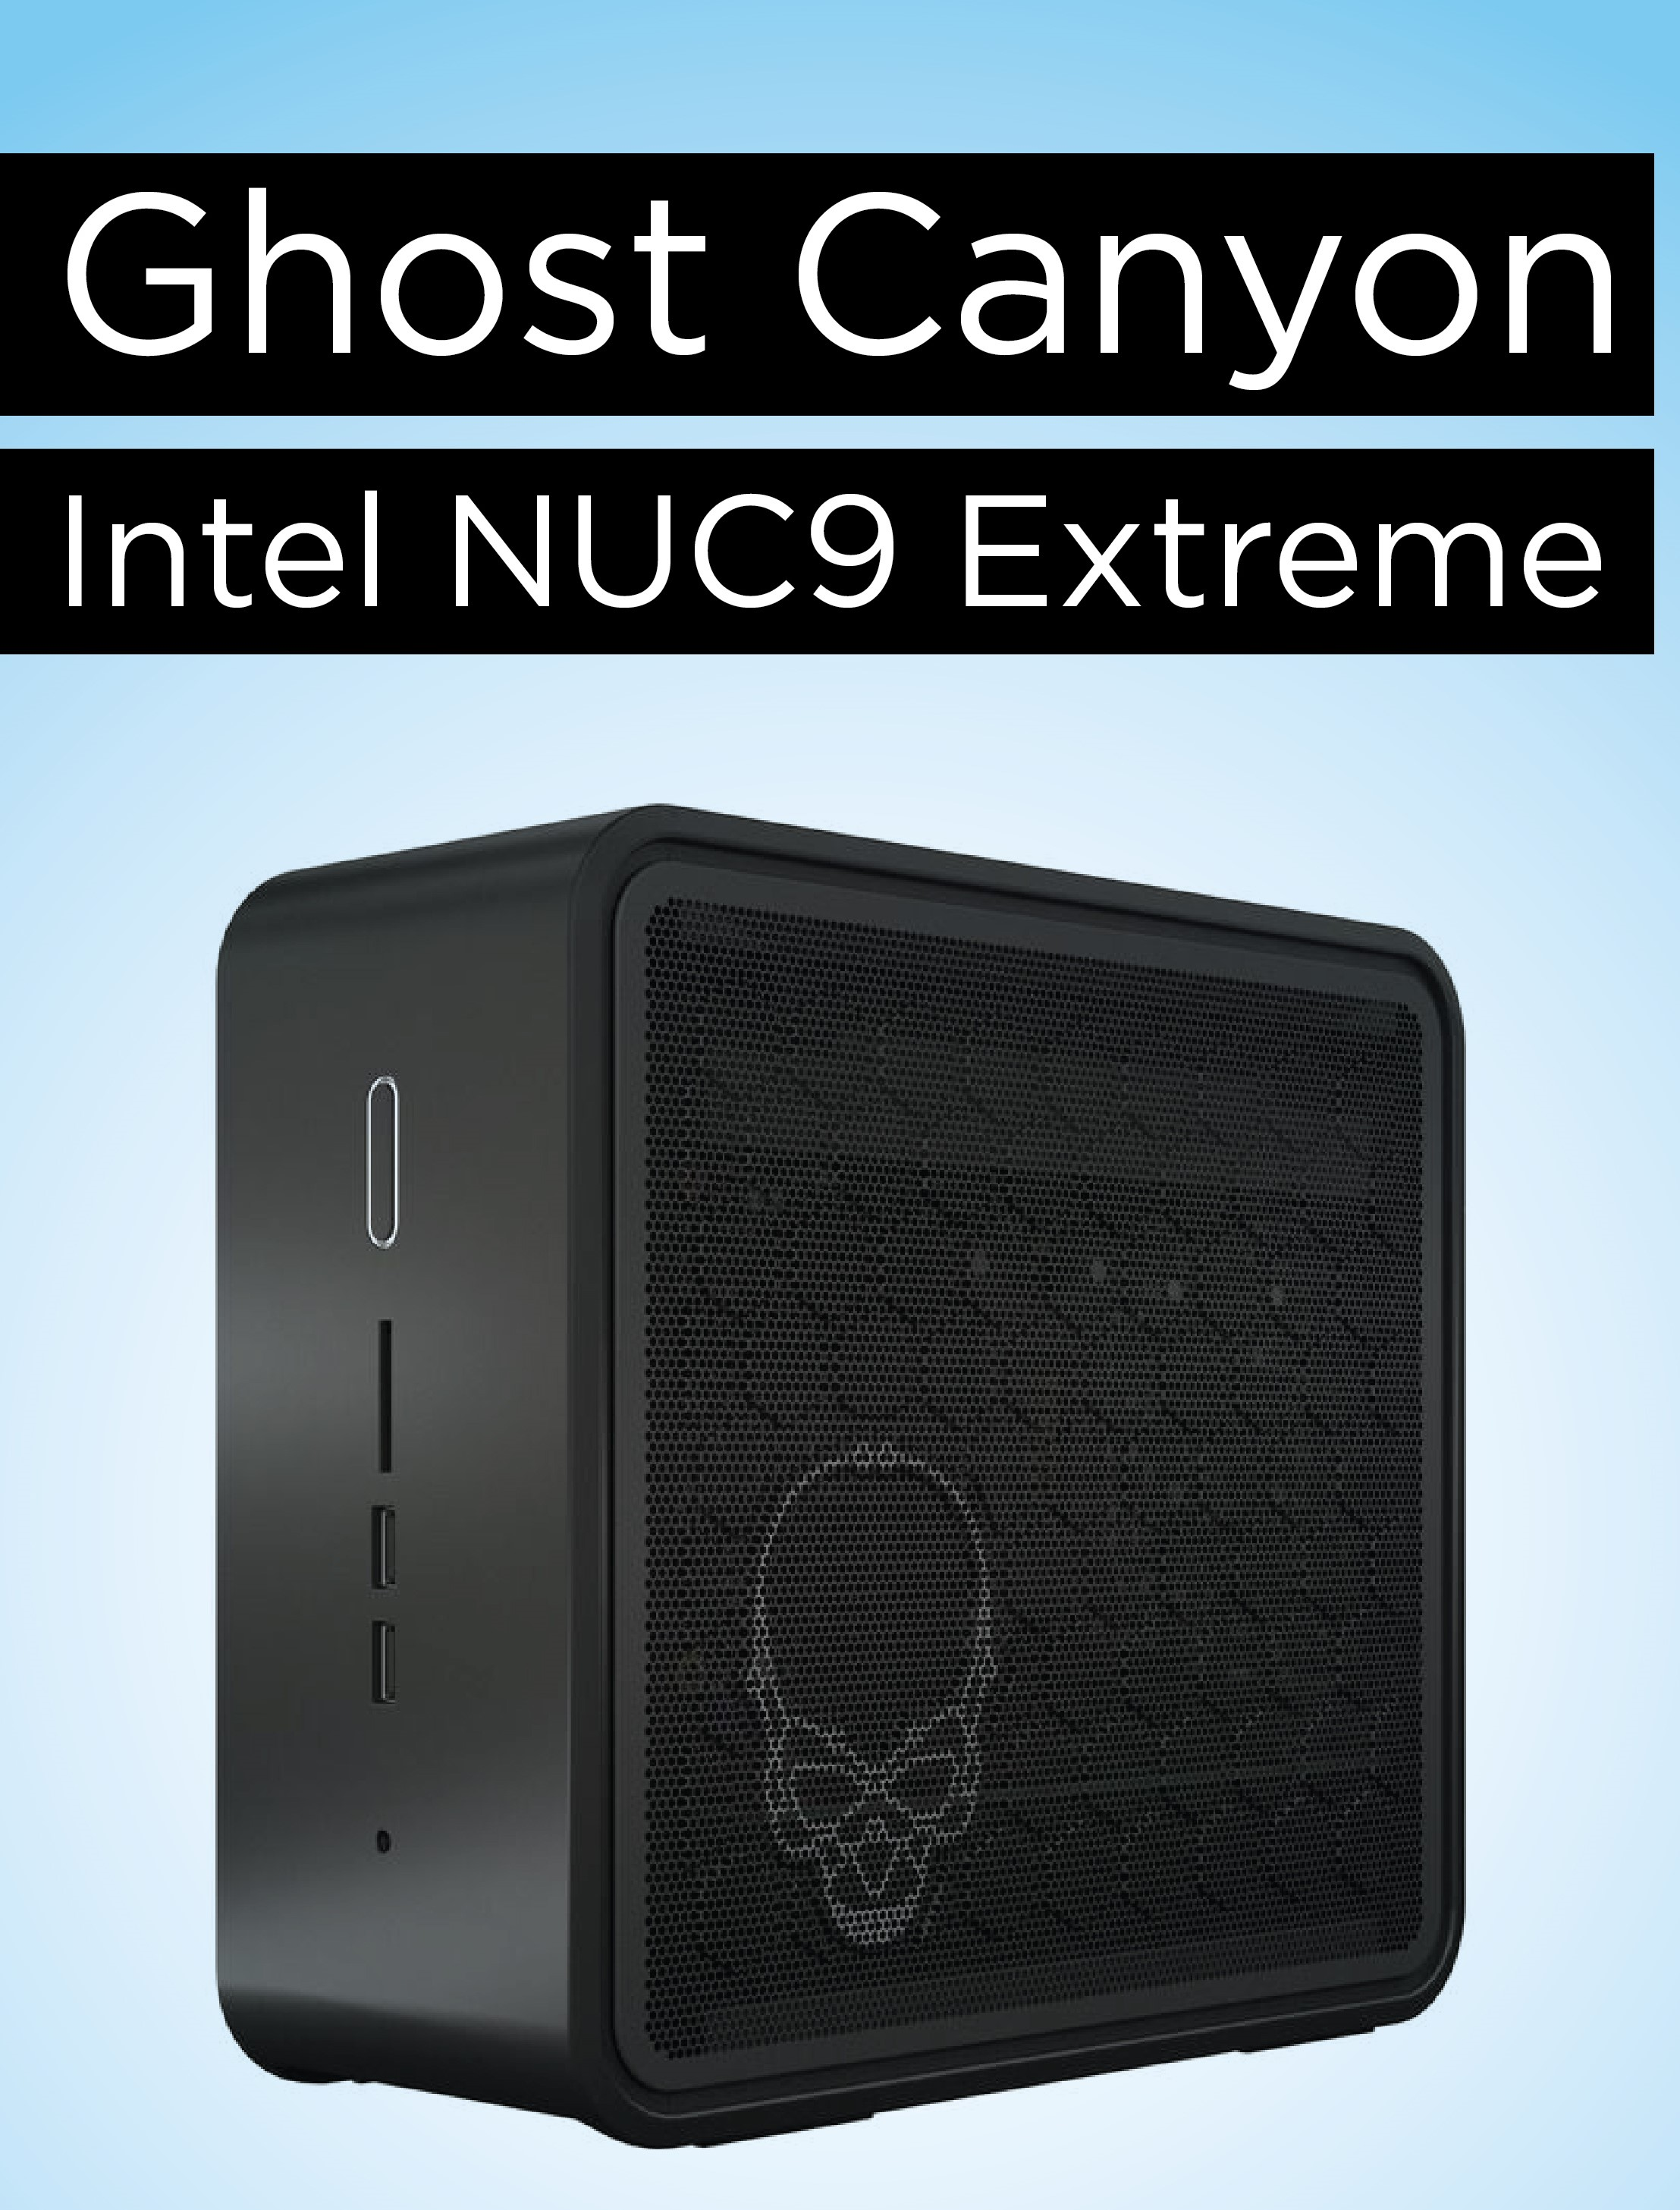 Meet the NUC 9 Extreme that can fit a mini GPU